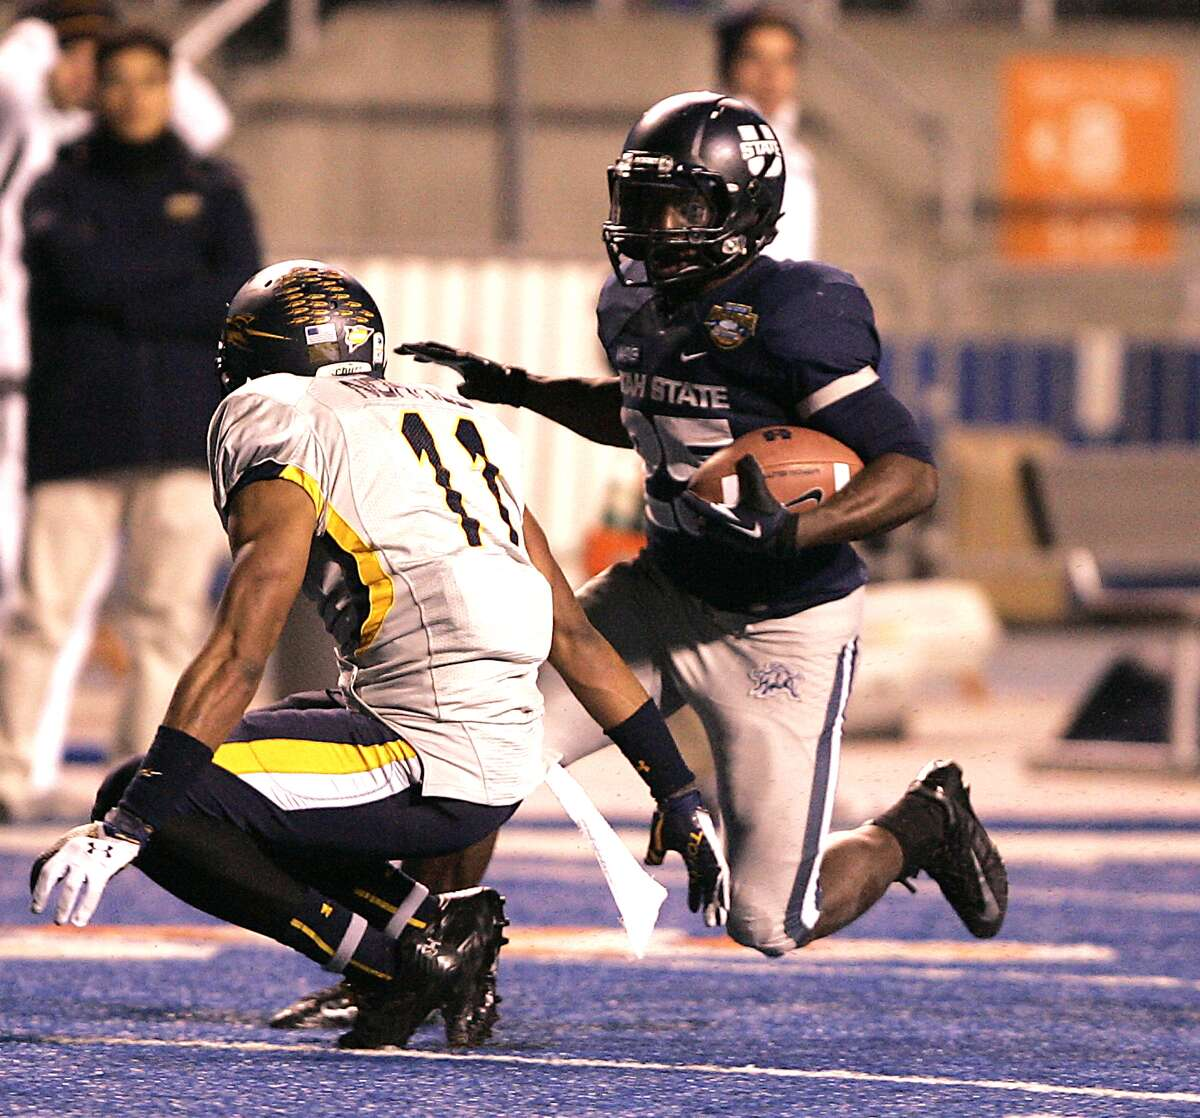 Famous Idaho Potato Bowl, Dec. 15: Utah State 41, Toledo 15; Bronco Stadium in Boise, Idaho; Payout: $325,000 PHOTO: Utah State's Kerwynn Williams (25) rushes for a first down against Toledo's Cheatham Norrils (11) during the second half of the Famous Idaho Potato Bowl.